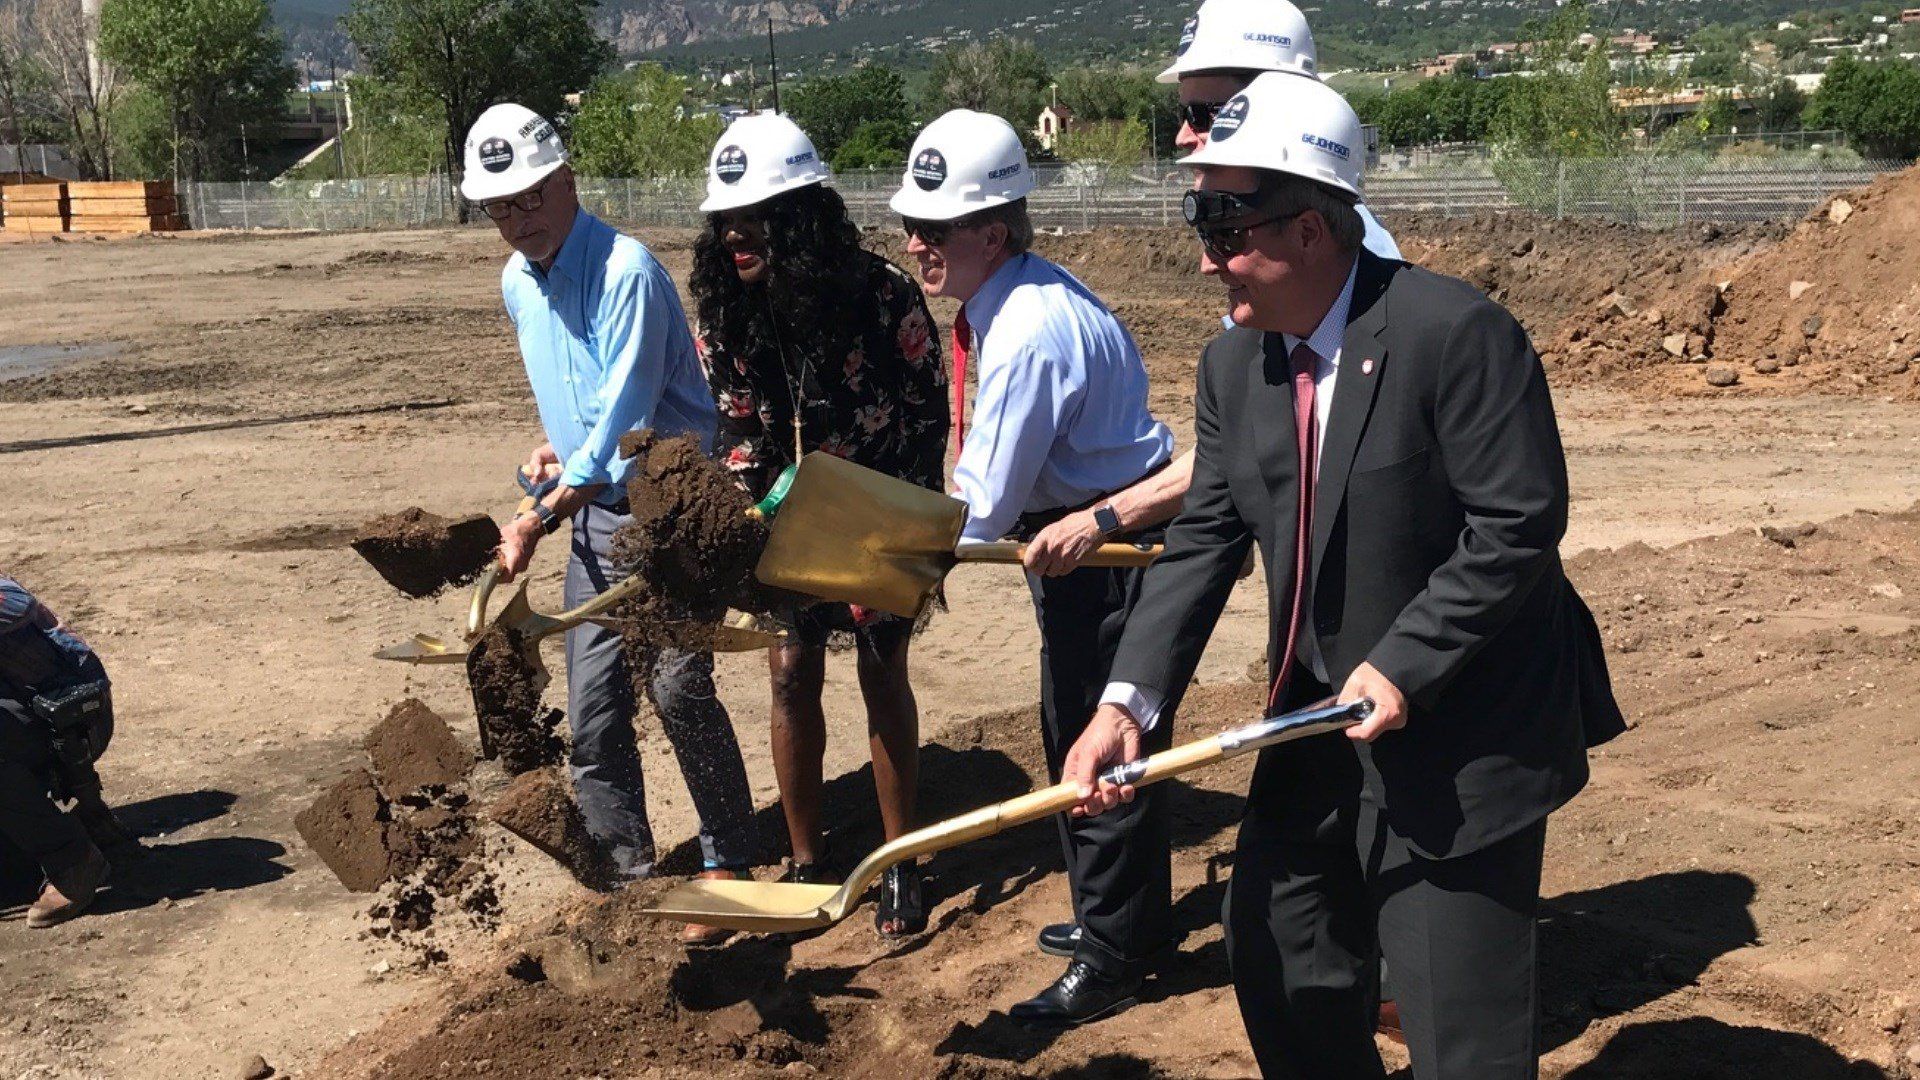 Officials make the ceremonial groundbreaking for the US Olympic Museum in Colorado Springs. (KOAA)